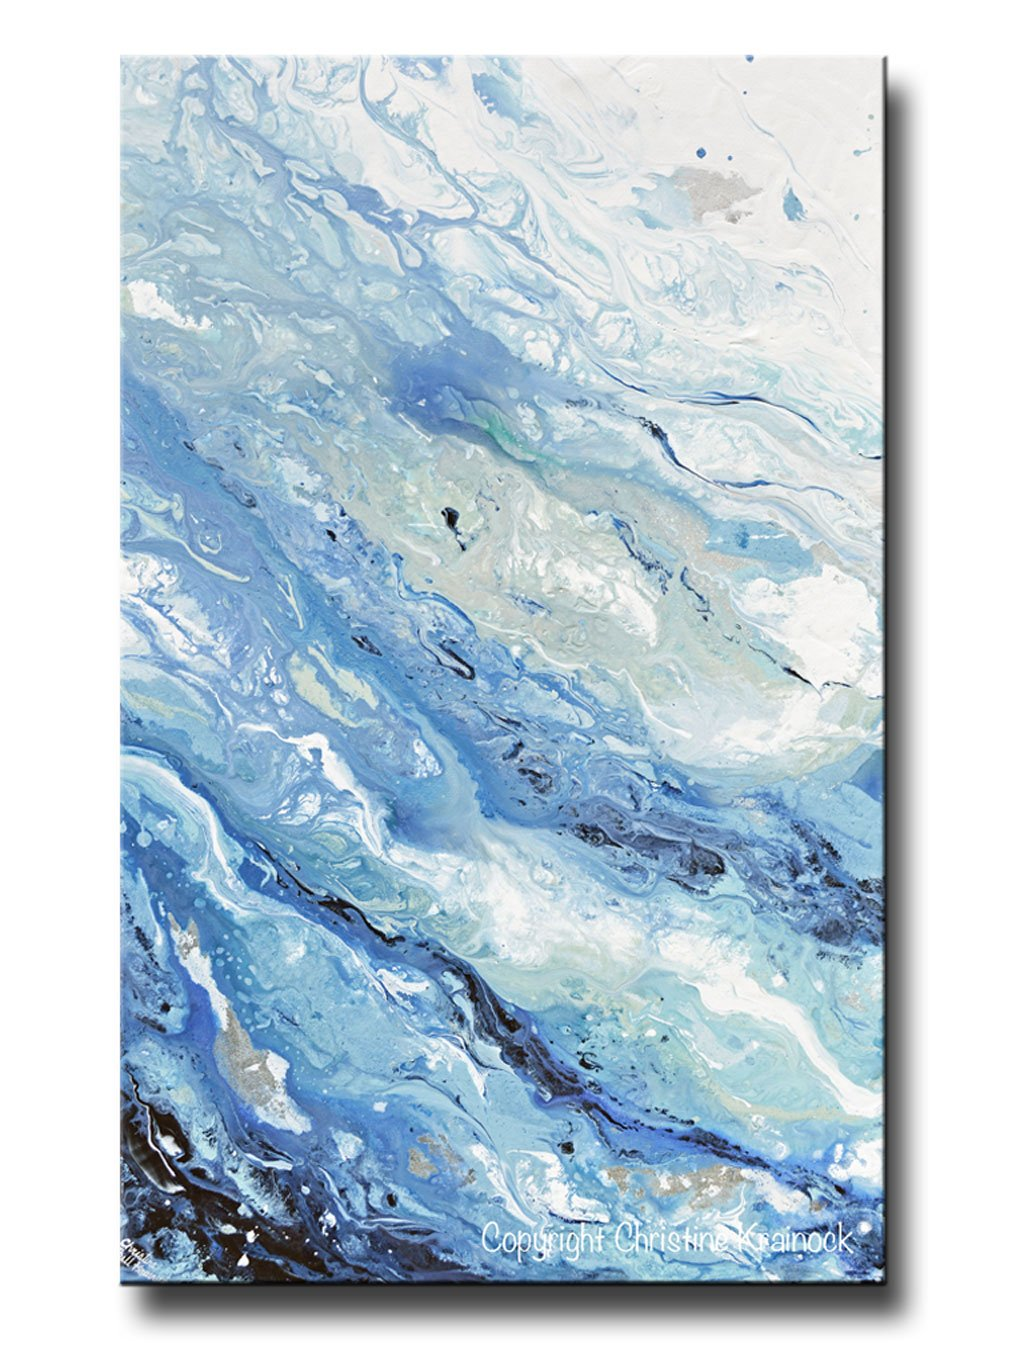 Giclee Print Art Abstract Painting Blue White Coastal Marbled Seascape Large Canvas Prints Wall Art Abstract Art Painting Large Canvas Prints Abstract Painting